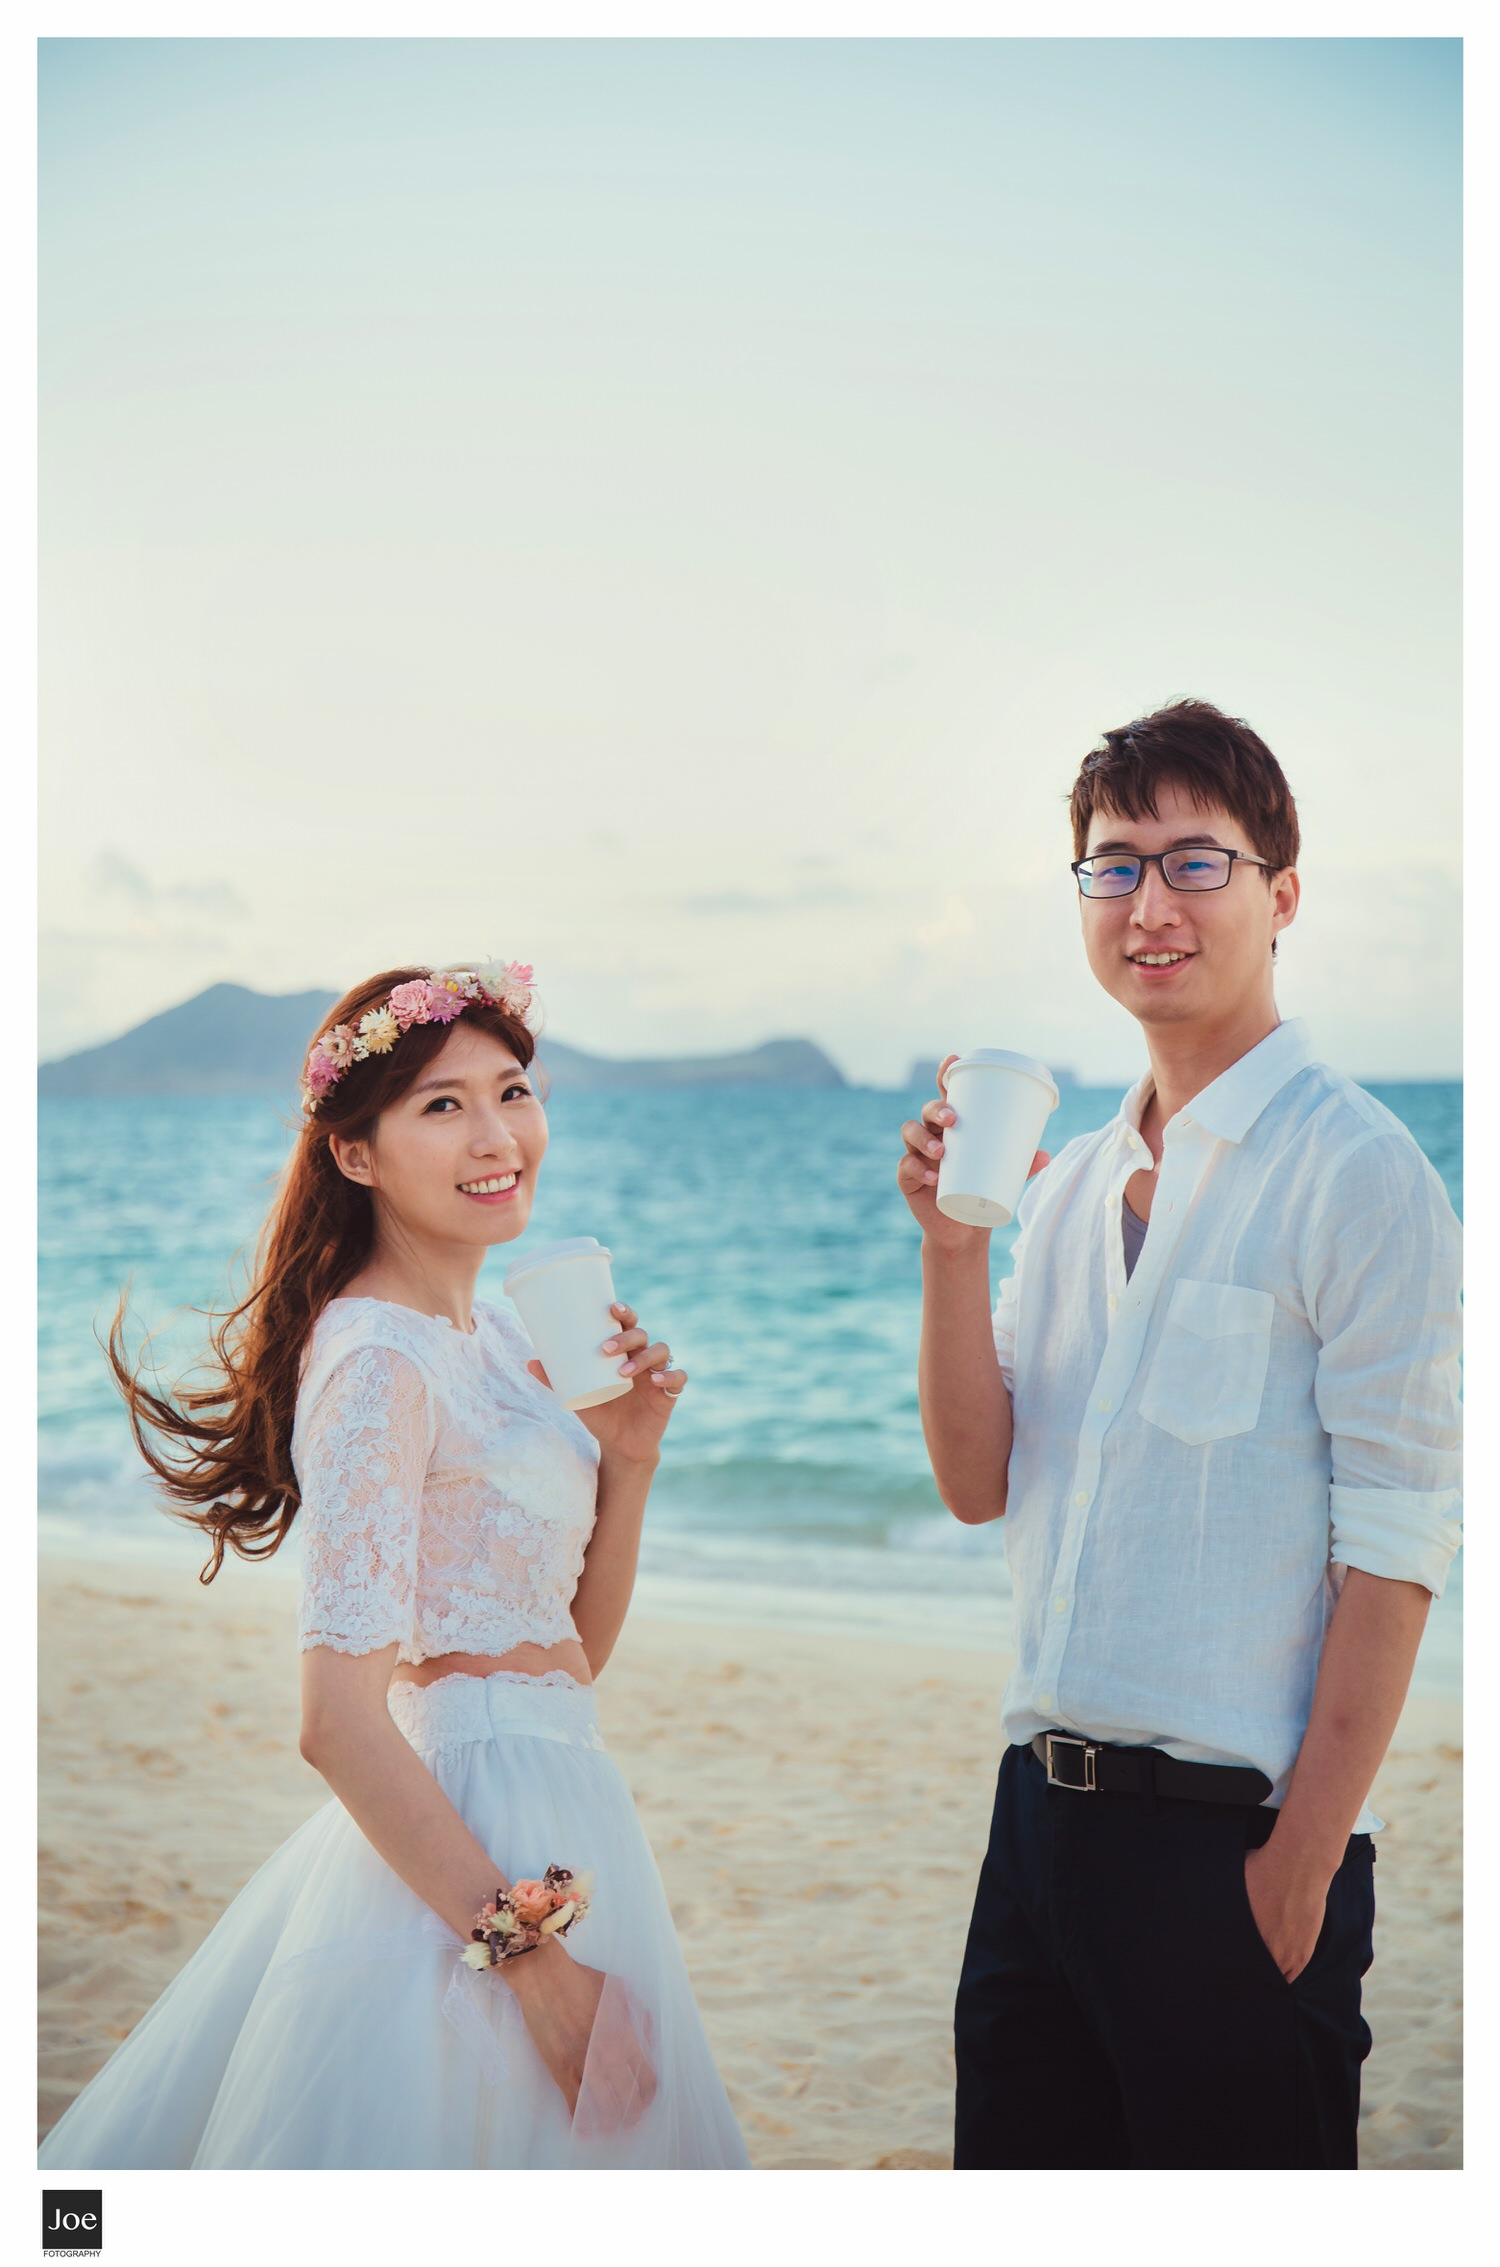 050-lanikai-beach-hawaii-pre-wedding-tiffany-tony-joe-fotography.jpg